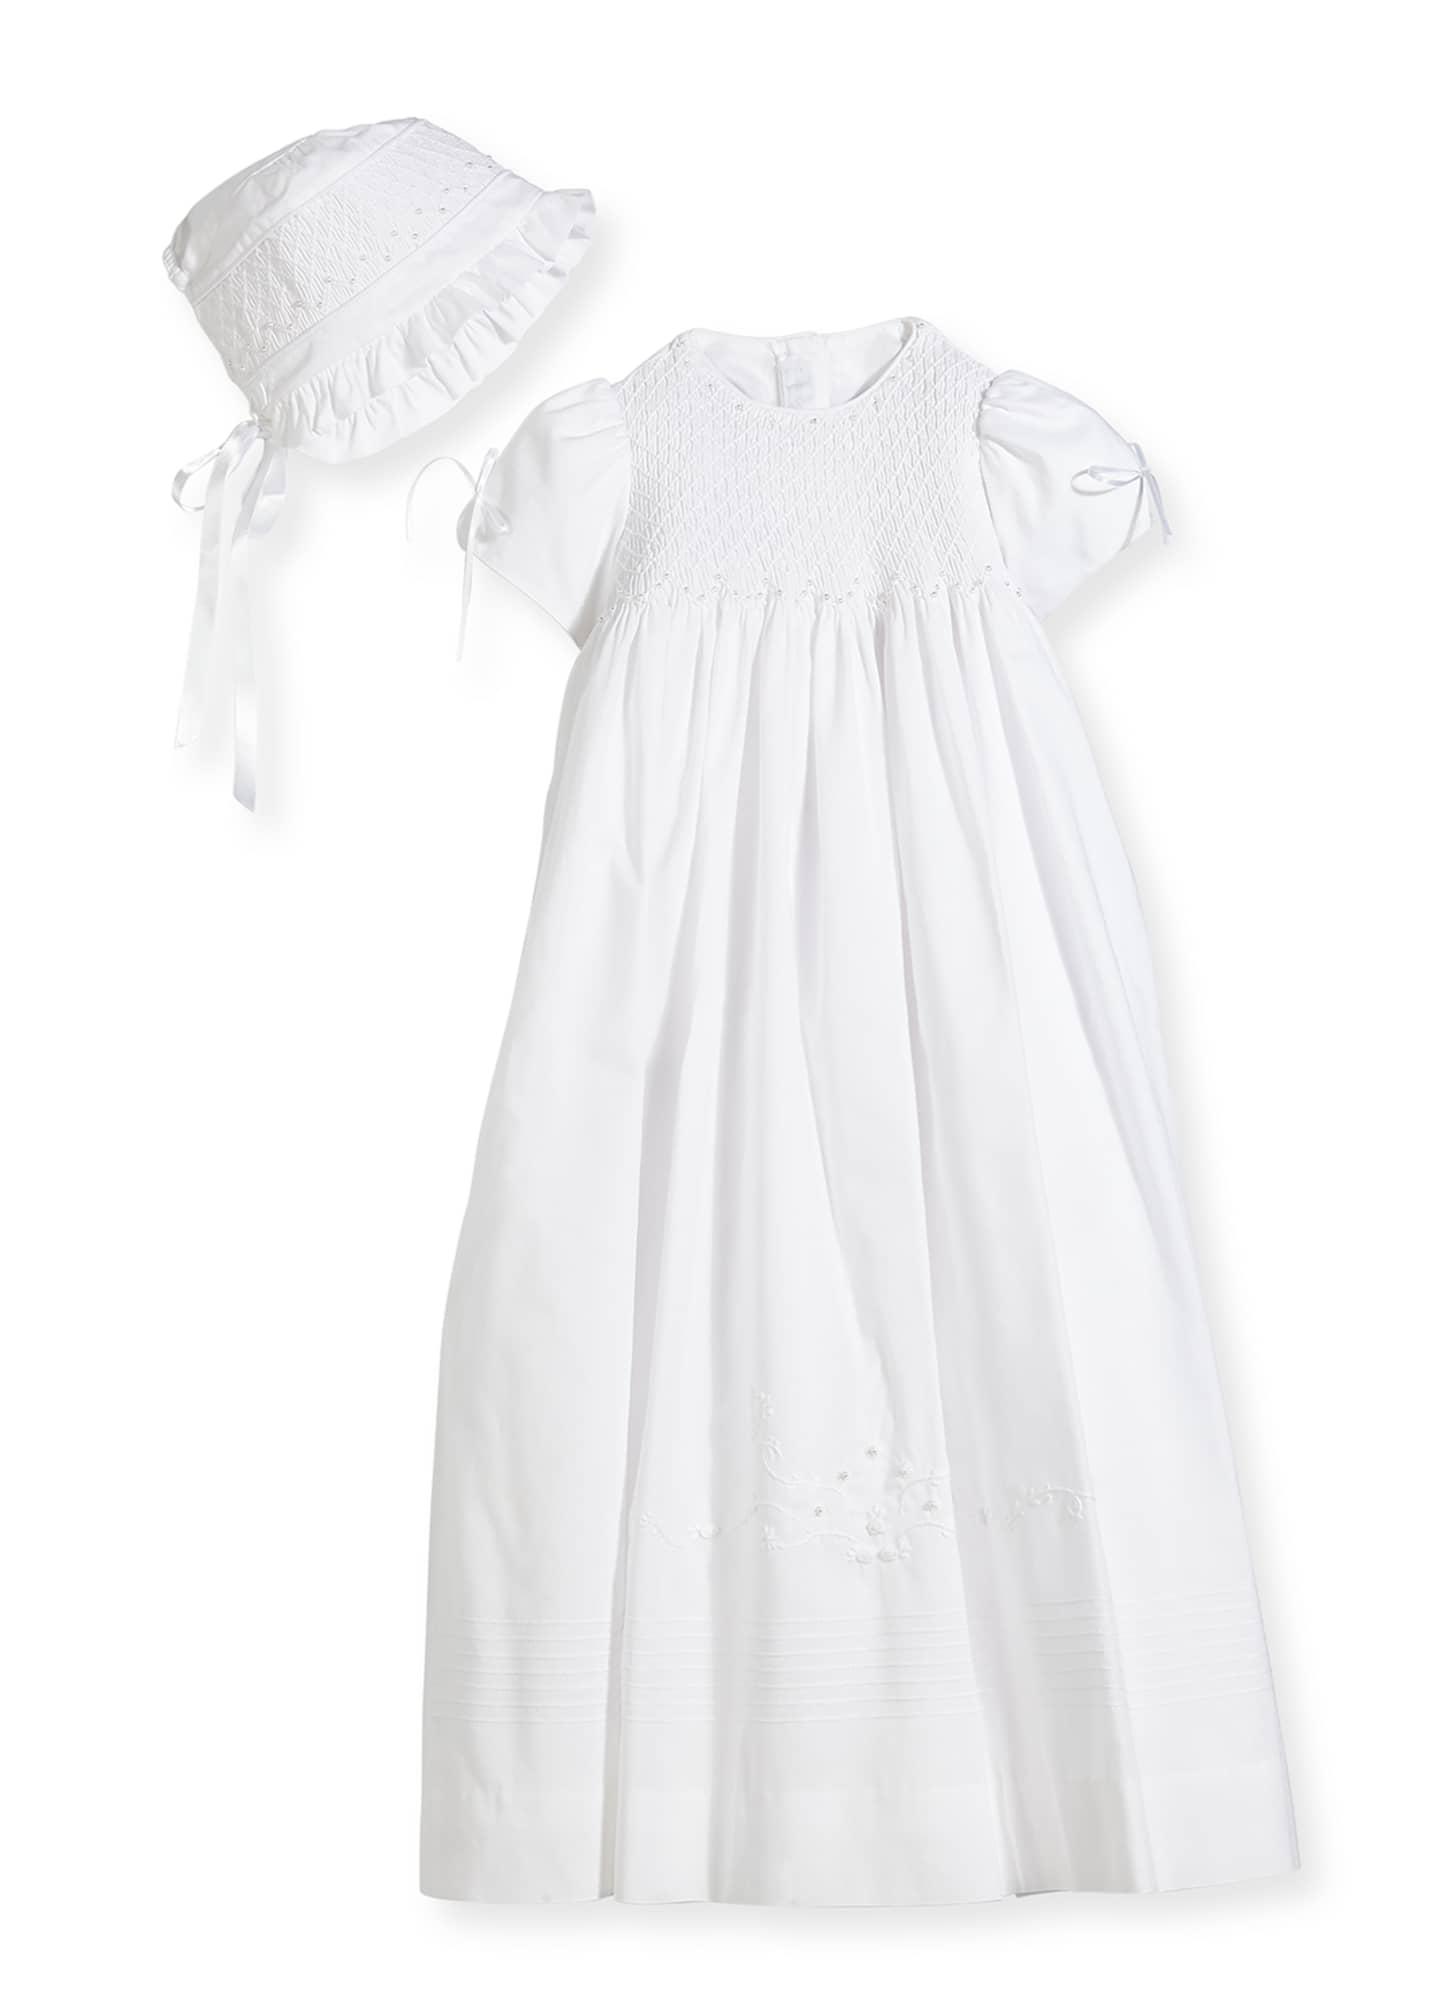 Image 1 of 2: Pearls Smock Embroidered Cotton Christening Gown w/ Bonnet, White, Size 6-12 Months